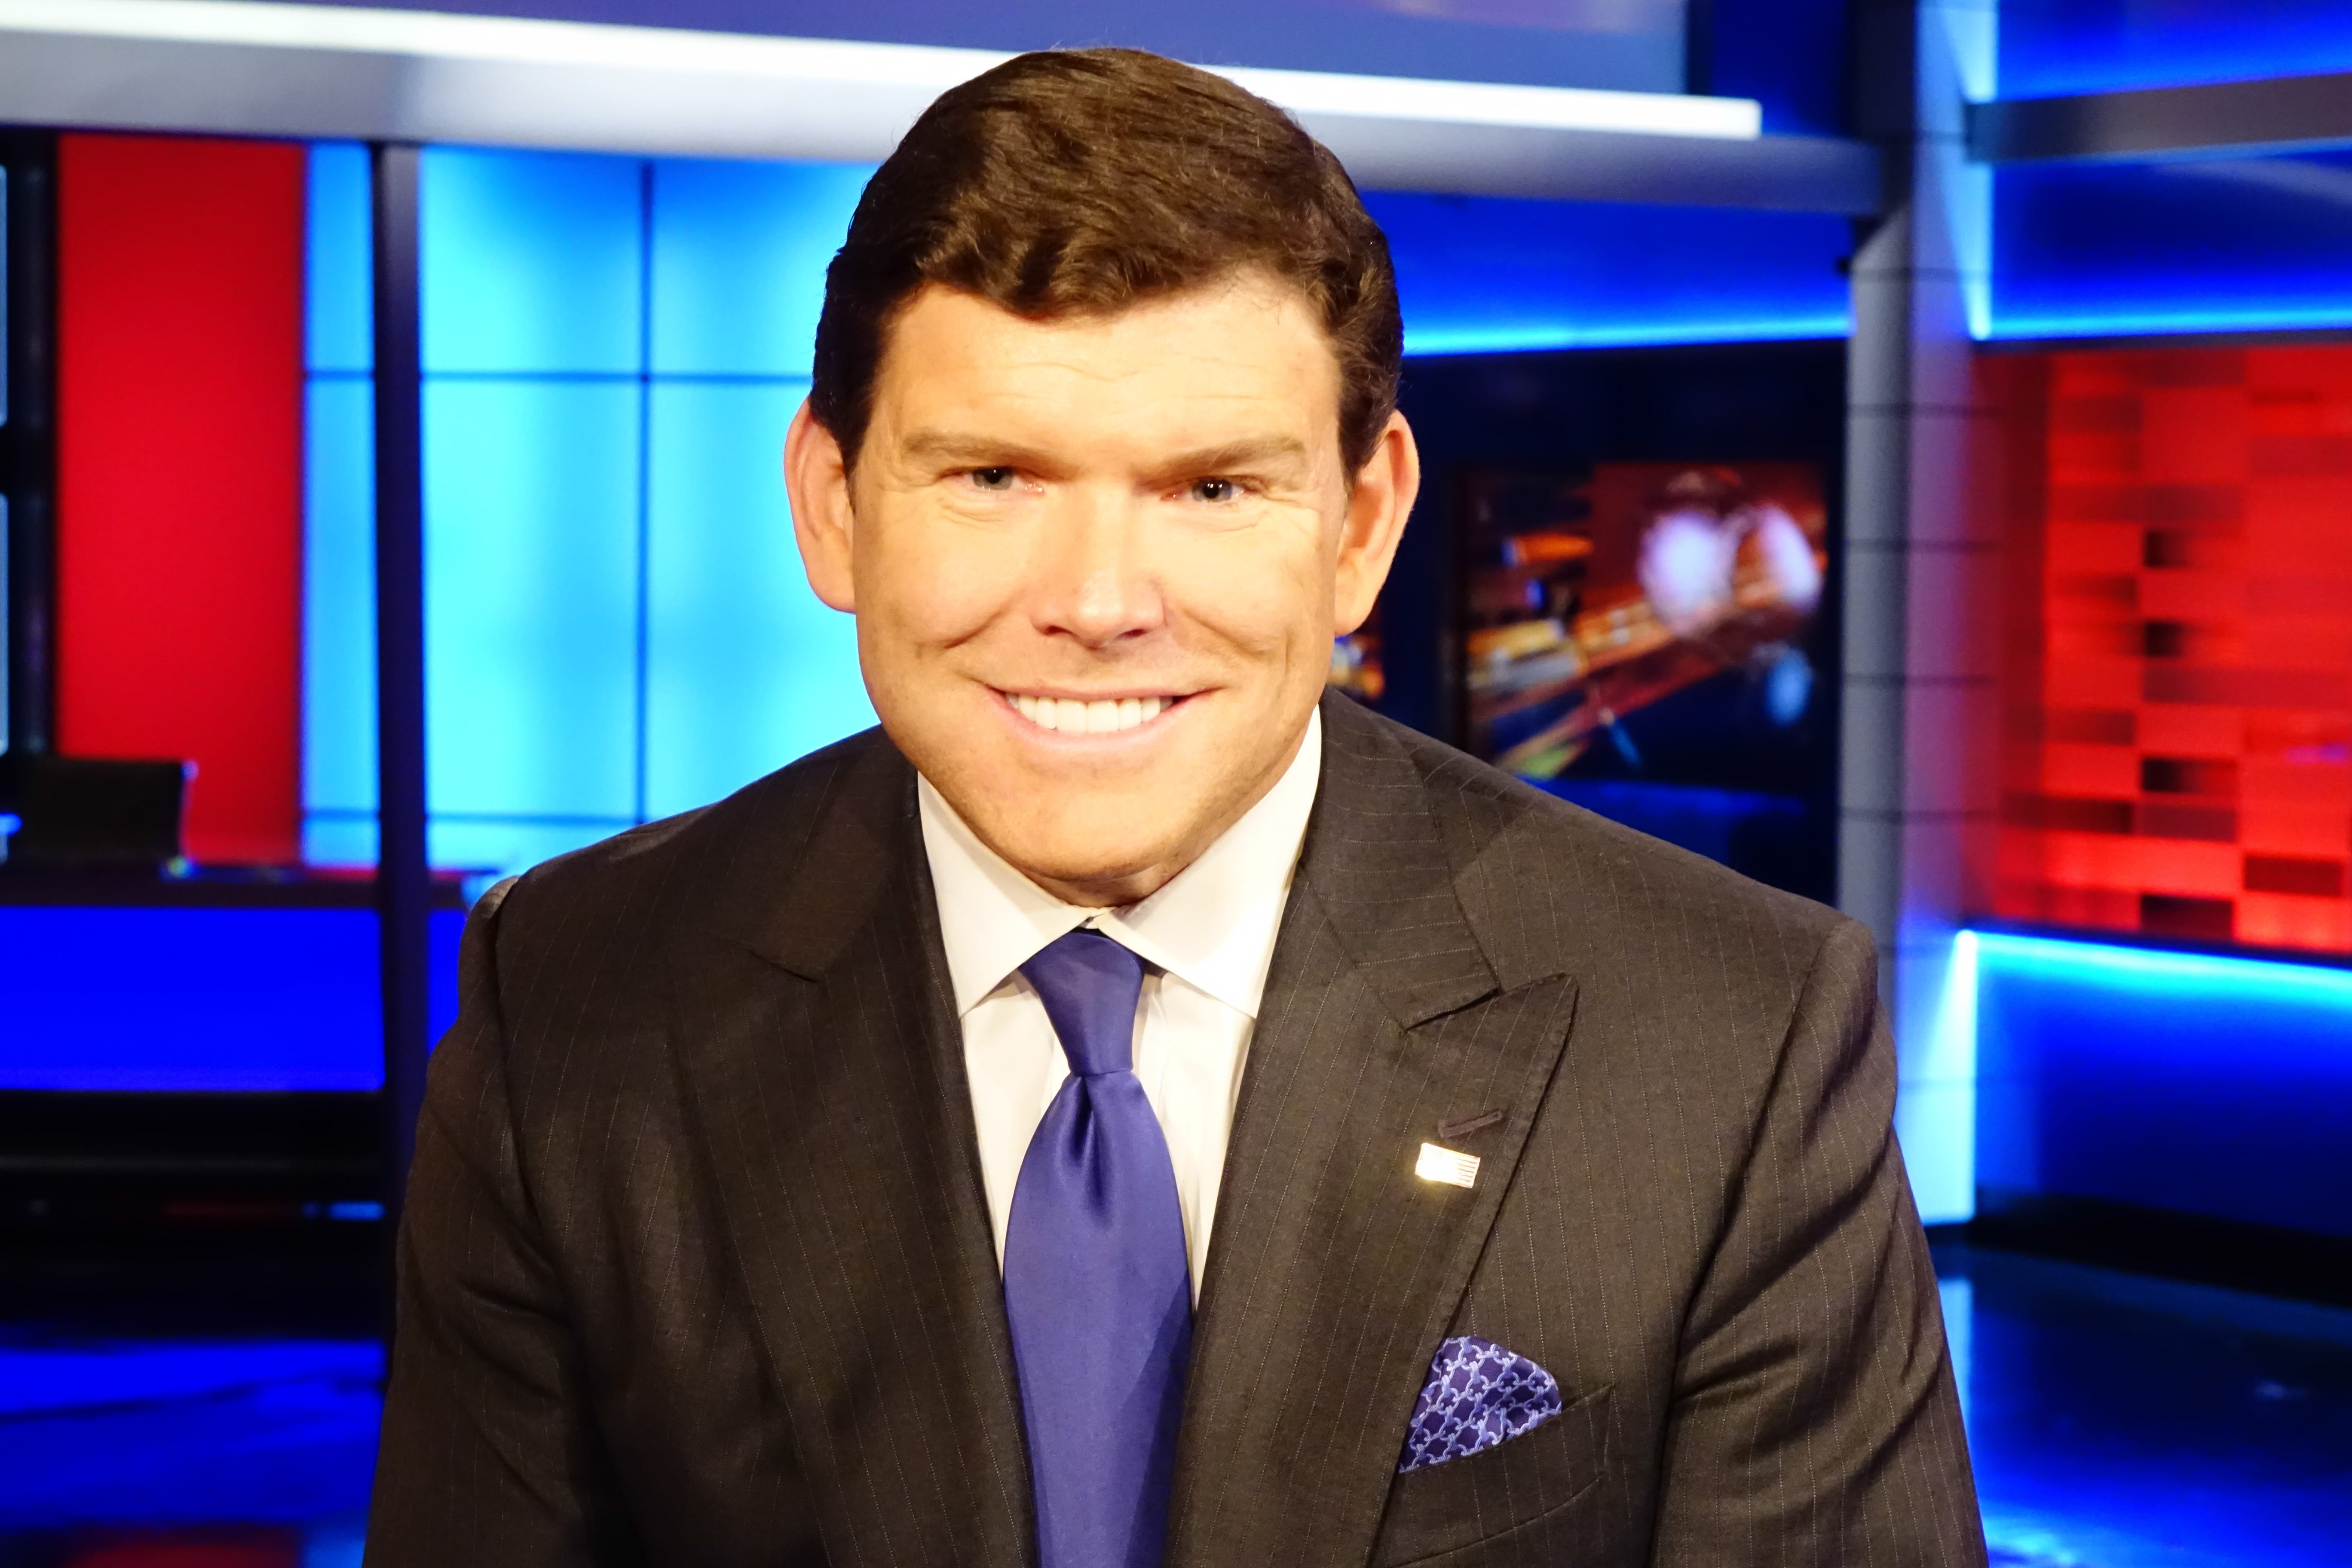 Fox News anchor Bret Baier in 'major car crash' with his family, Stephen Colbert reveals